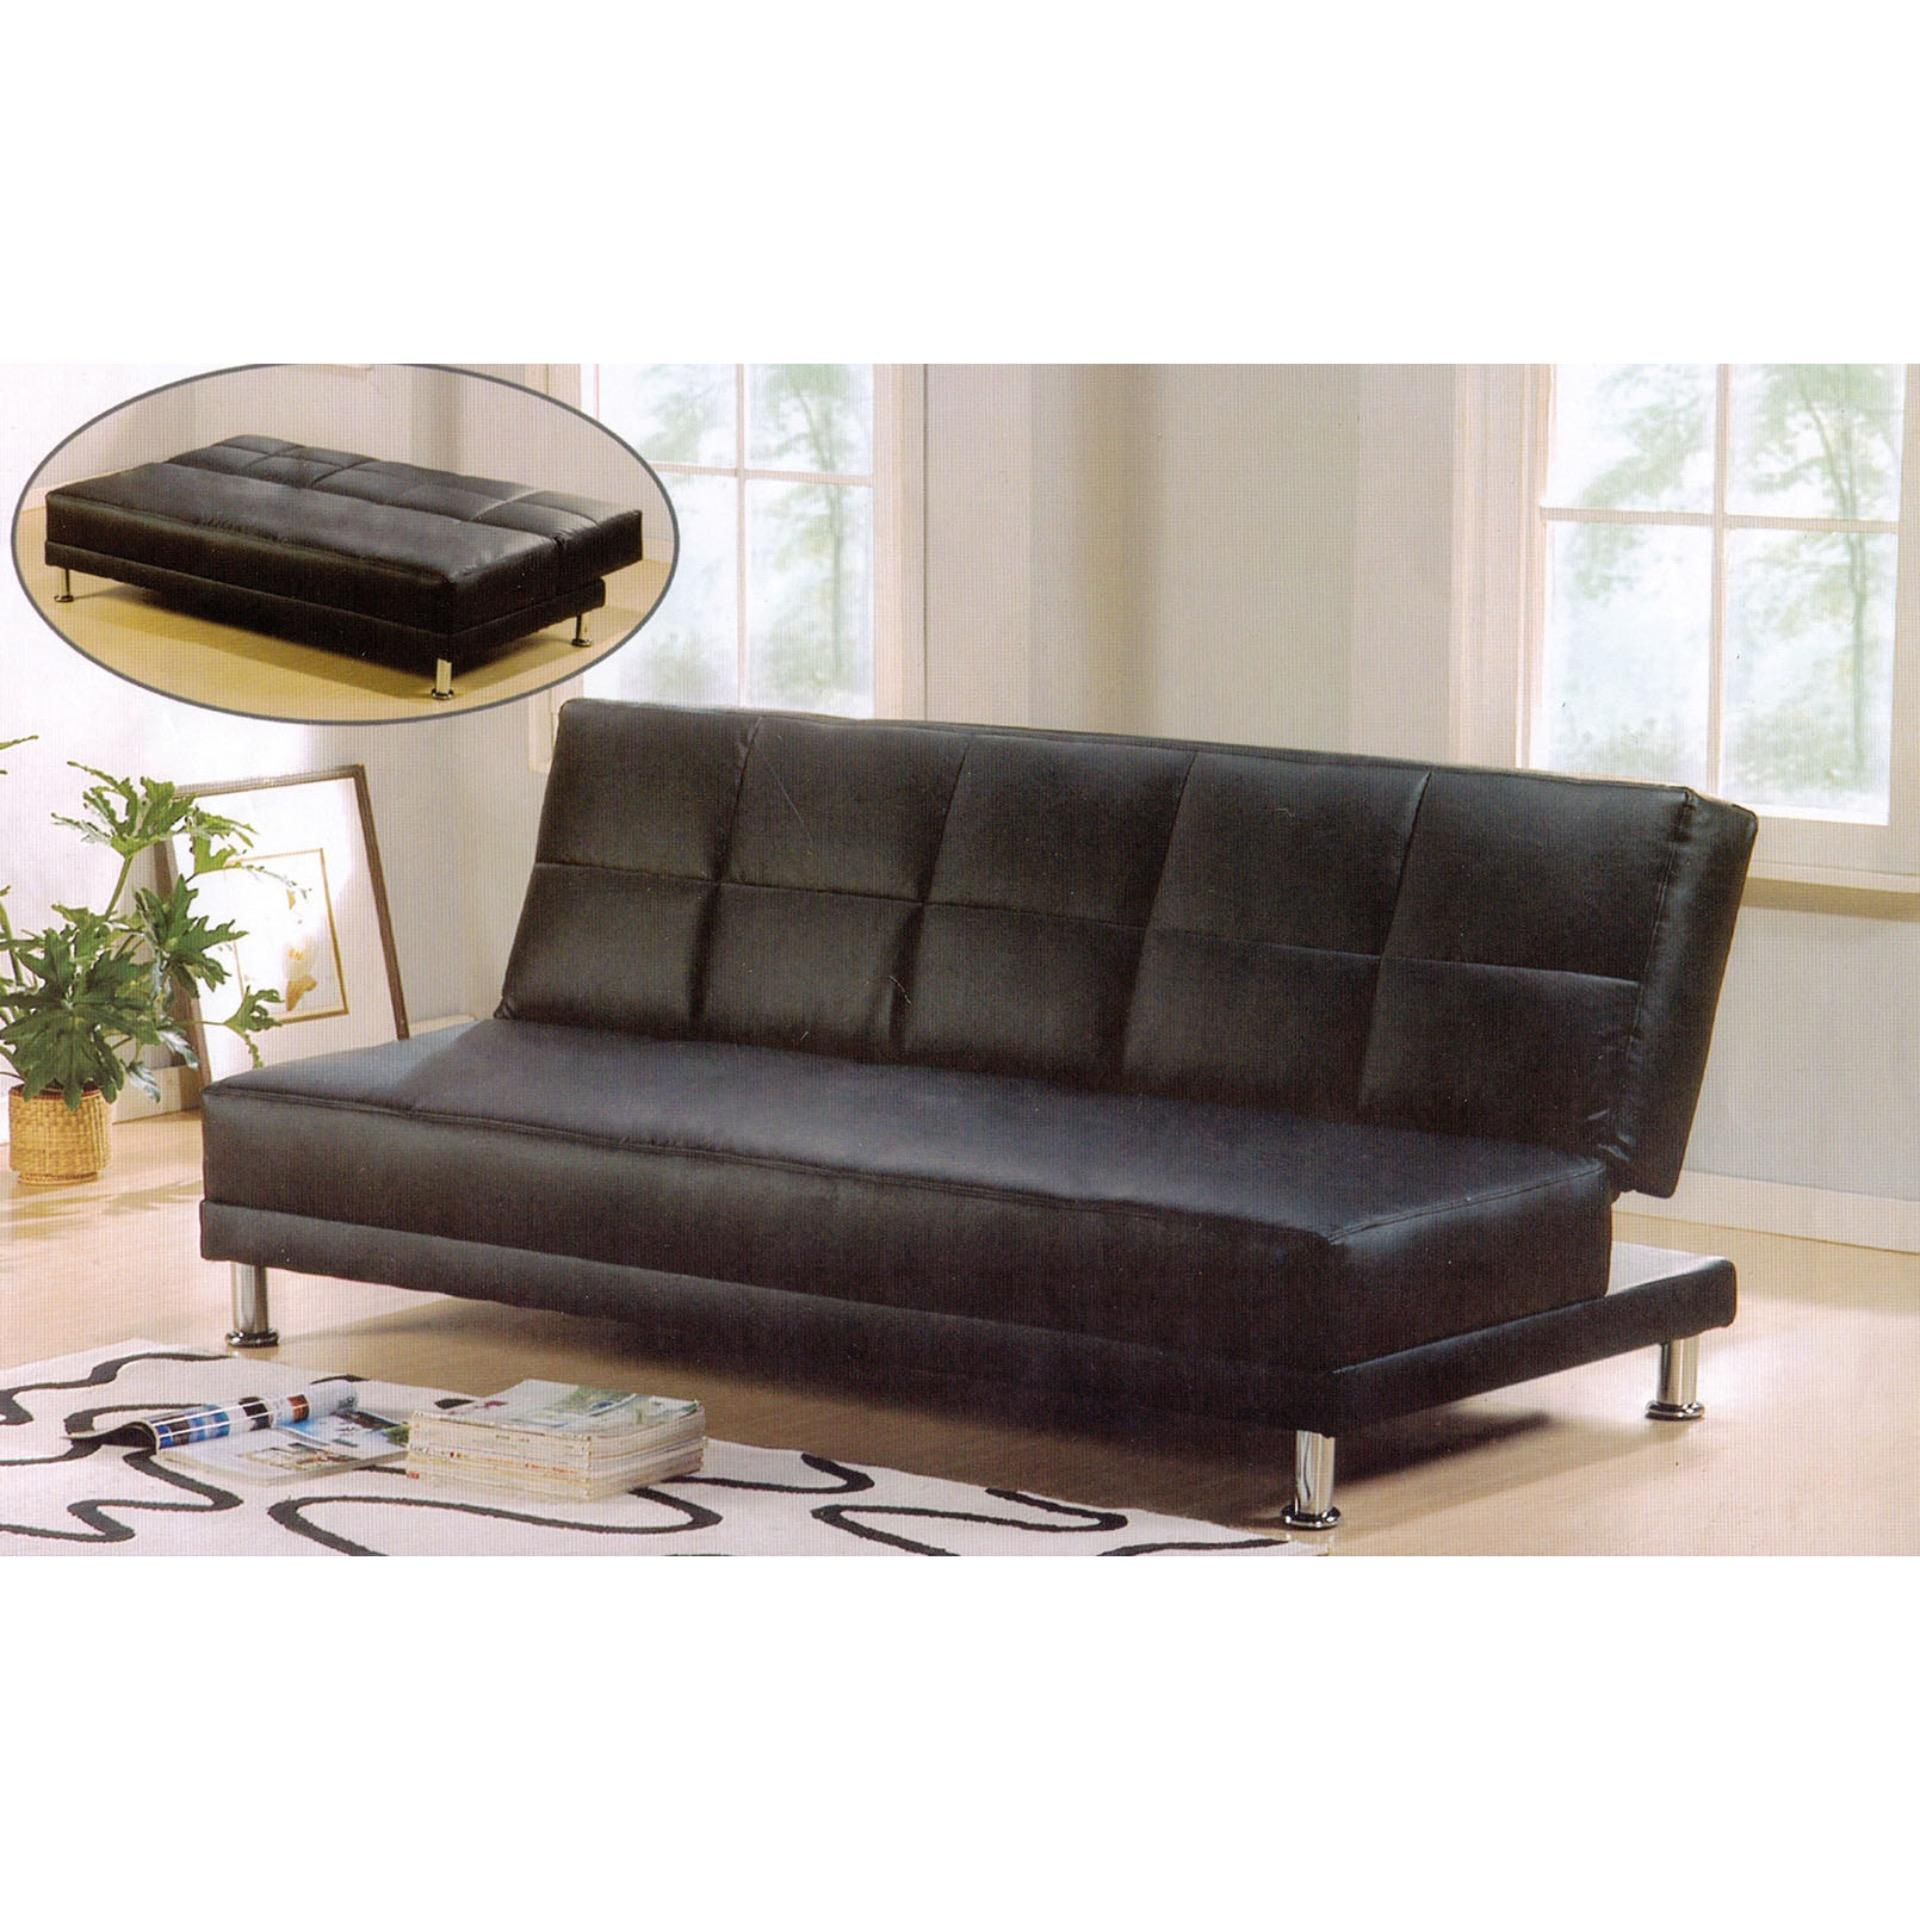 Solid 3-Seater Leather Lounge Sofa Bed Office Sofa Bed Room Sofa Bed